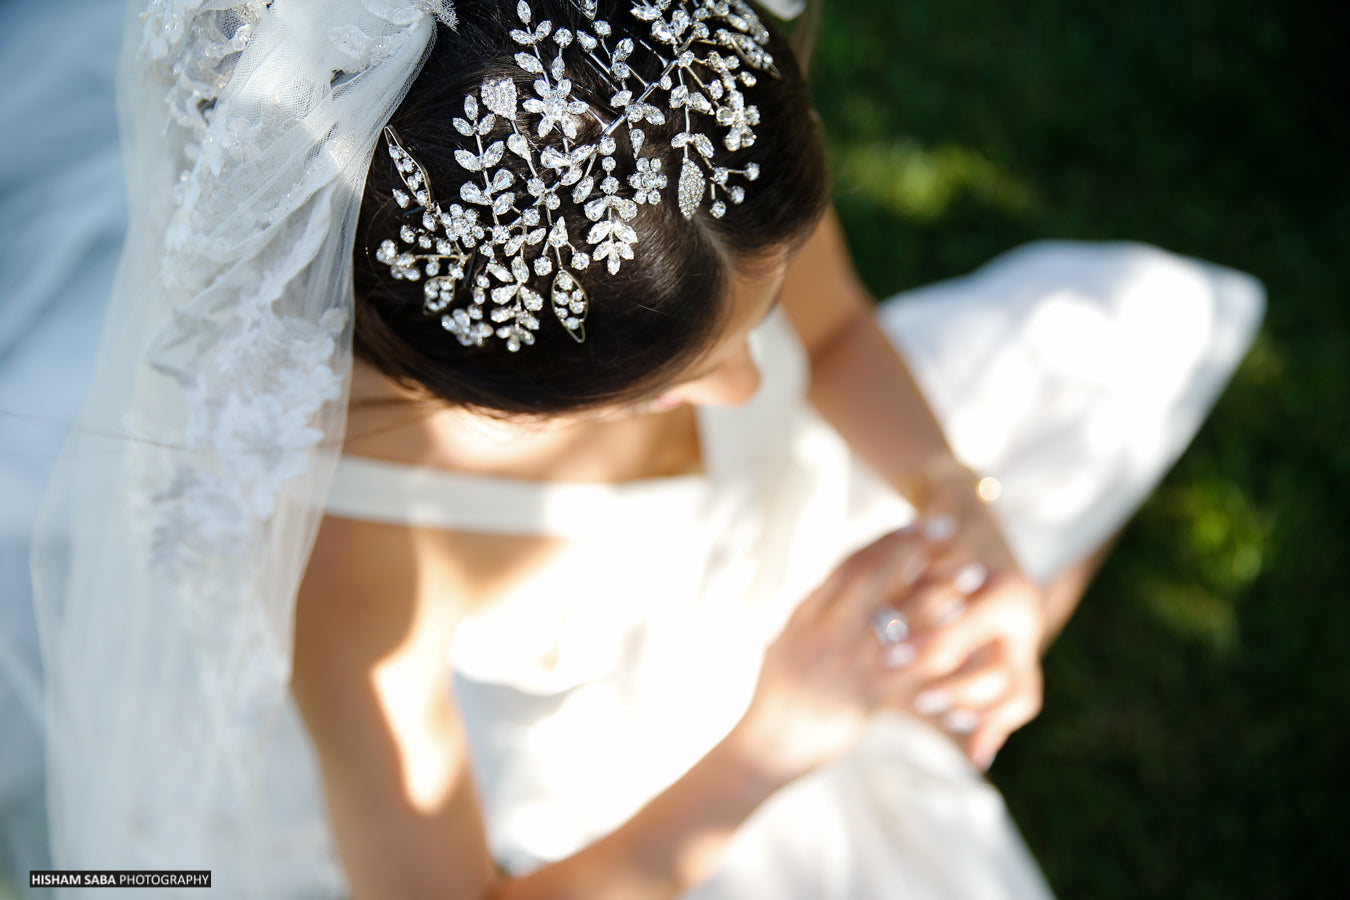 Bridal Hairstyles – Headpieces with crystals – Hair Jewelry – Wedding Accessories – Bridal Styles